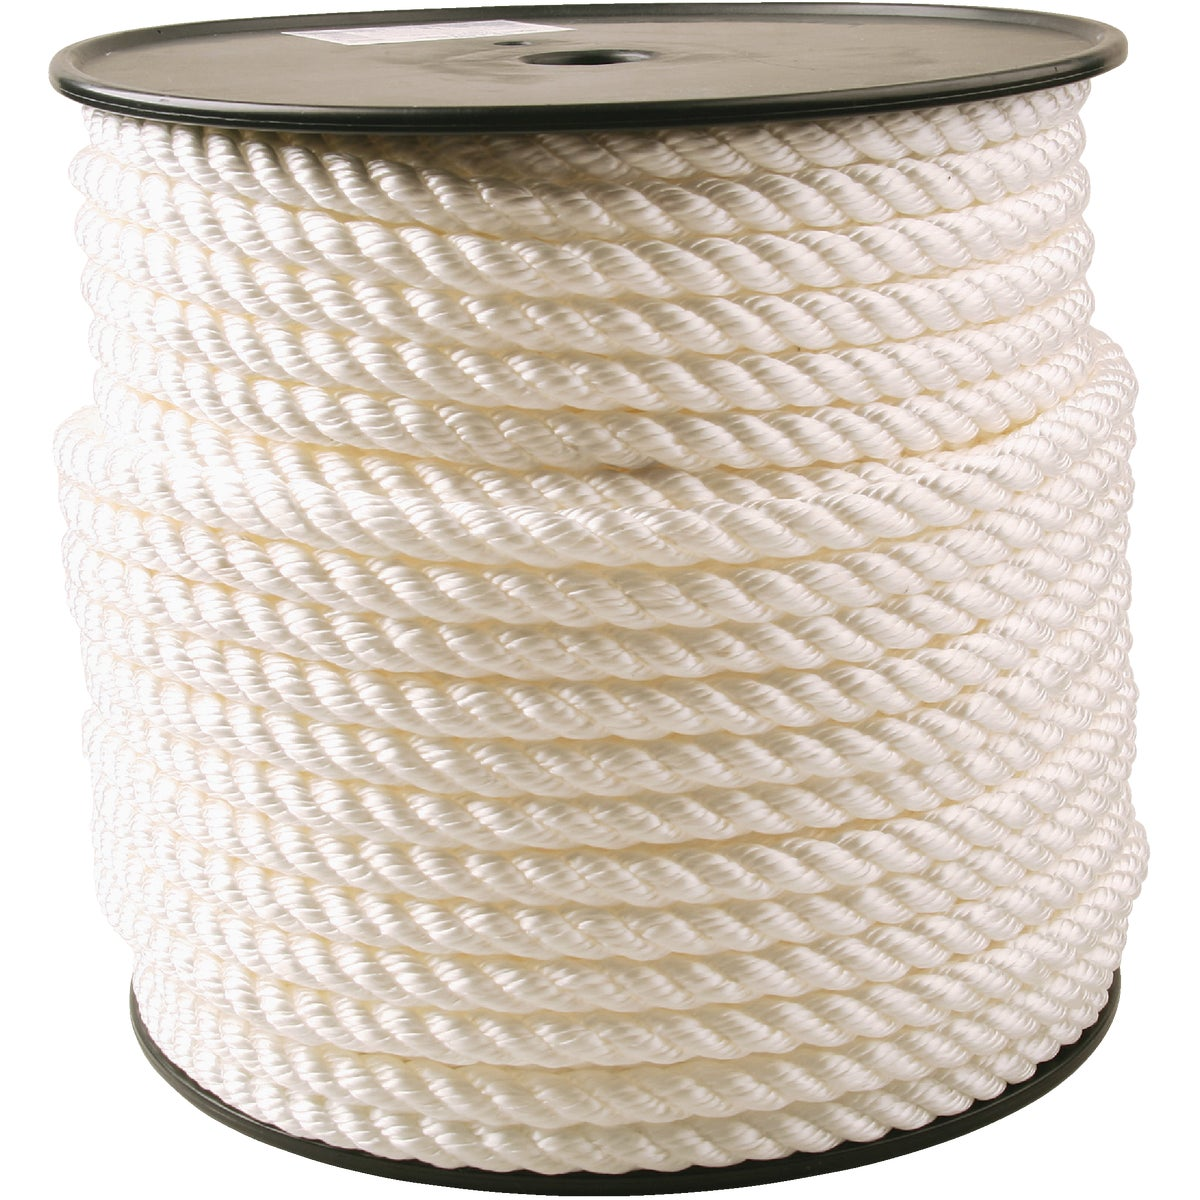 "1/2""X300' NYL TWIST ROPE - 700316 by Do it Best"